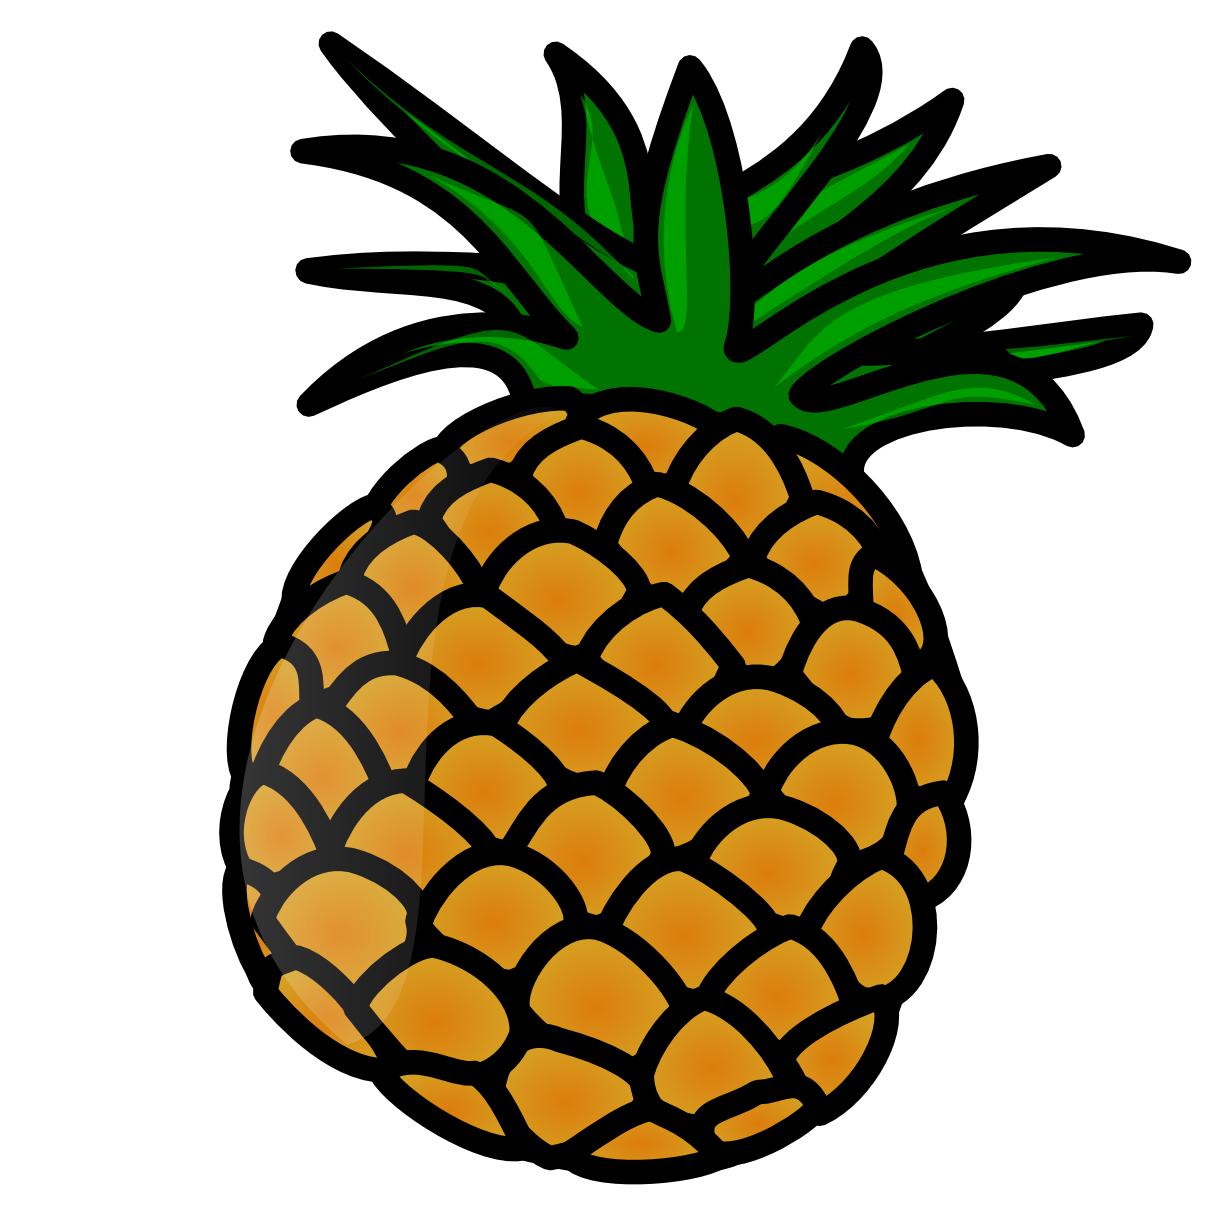 download cartoon pineapple clip art hq png image freepngimg buffalo clip art images buffalo clip art free